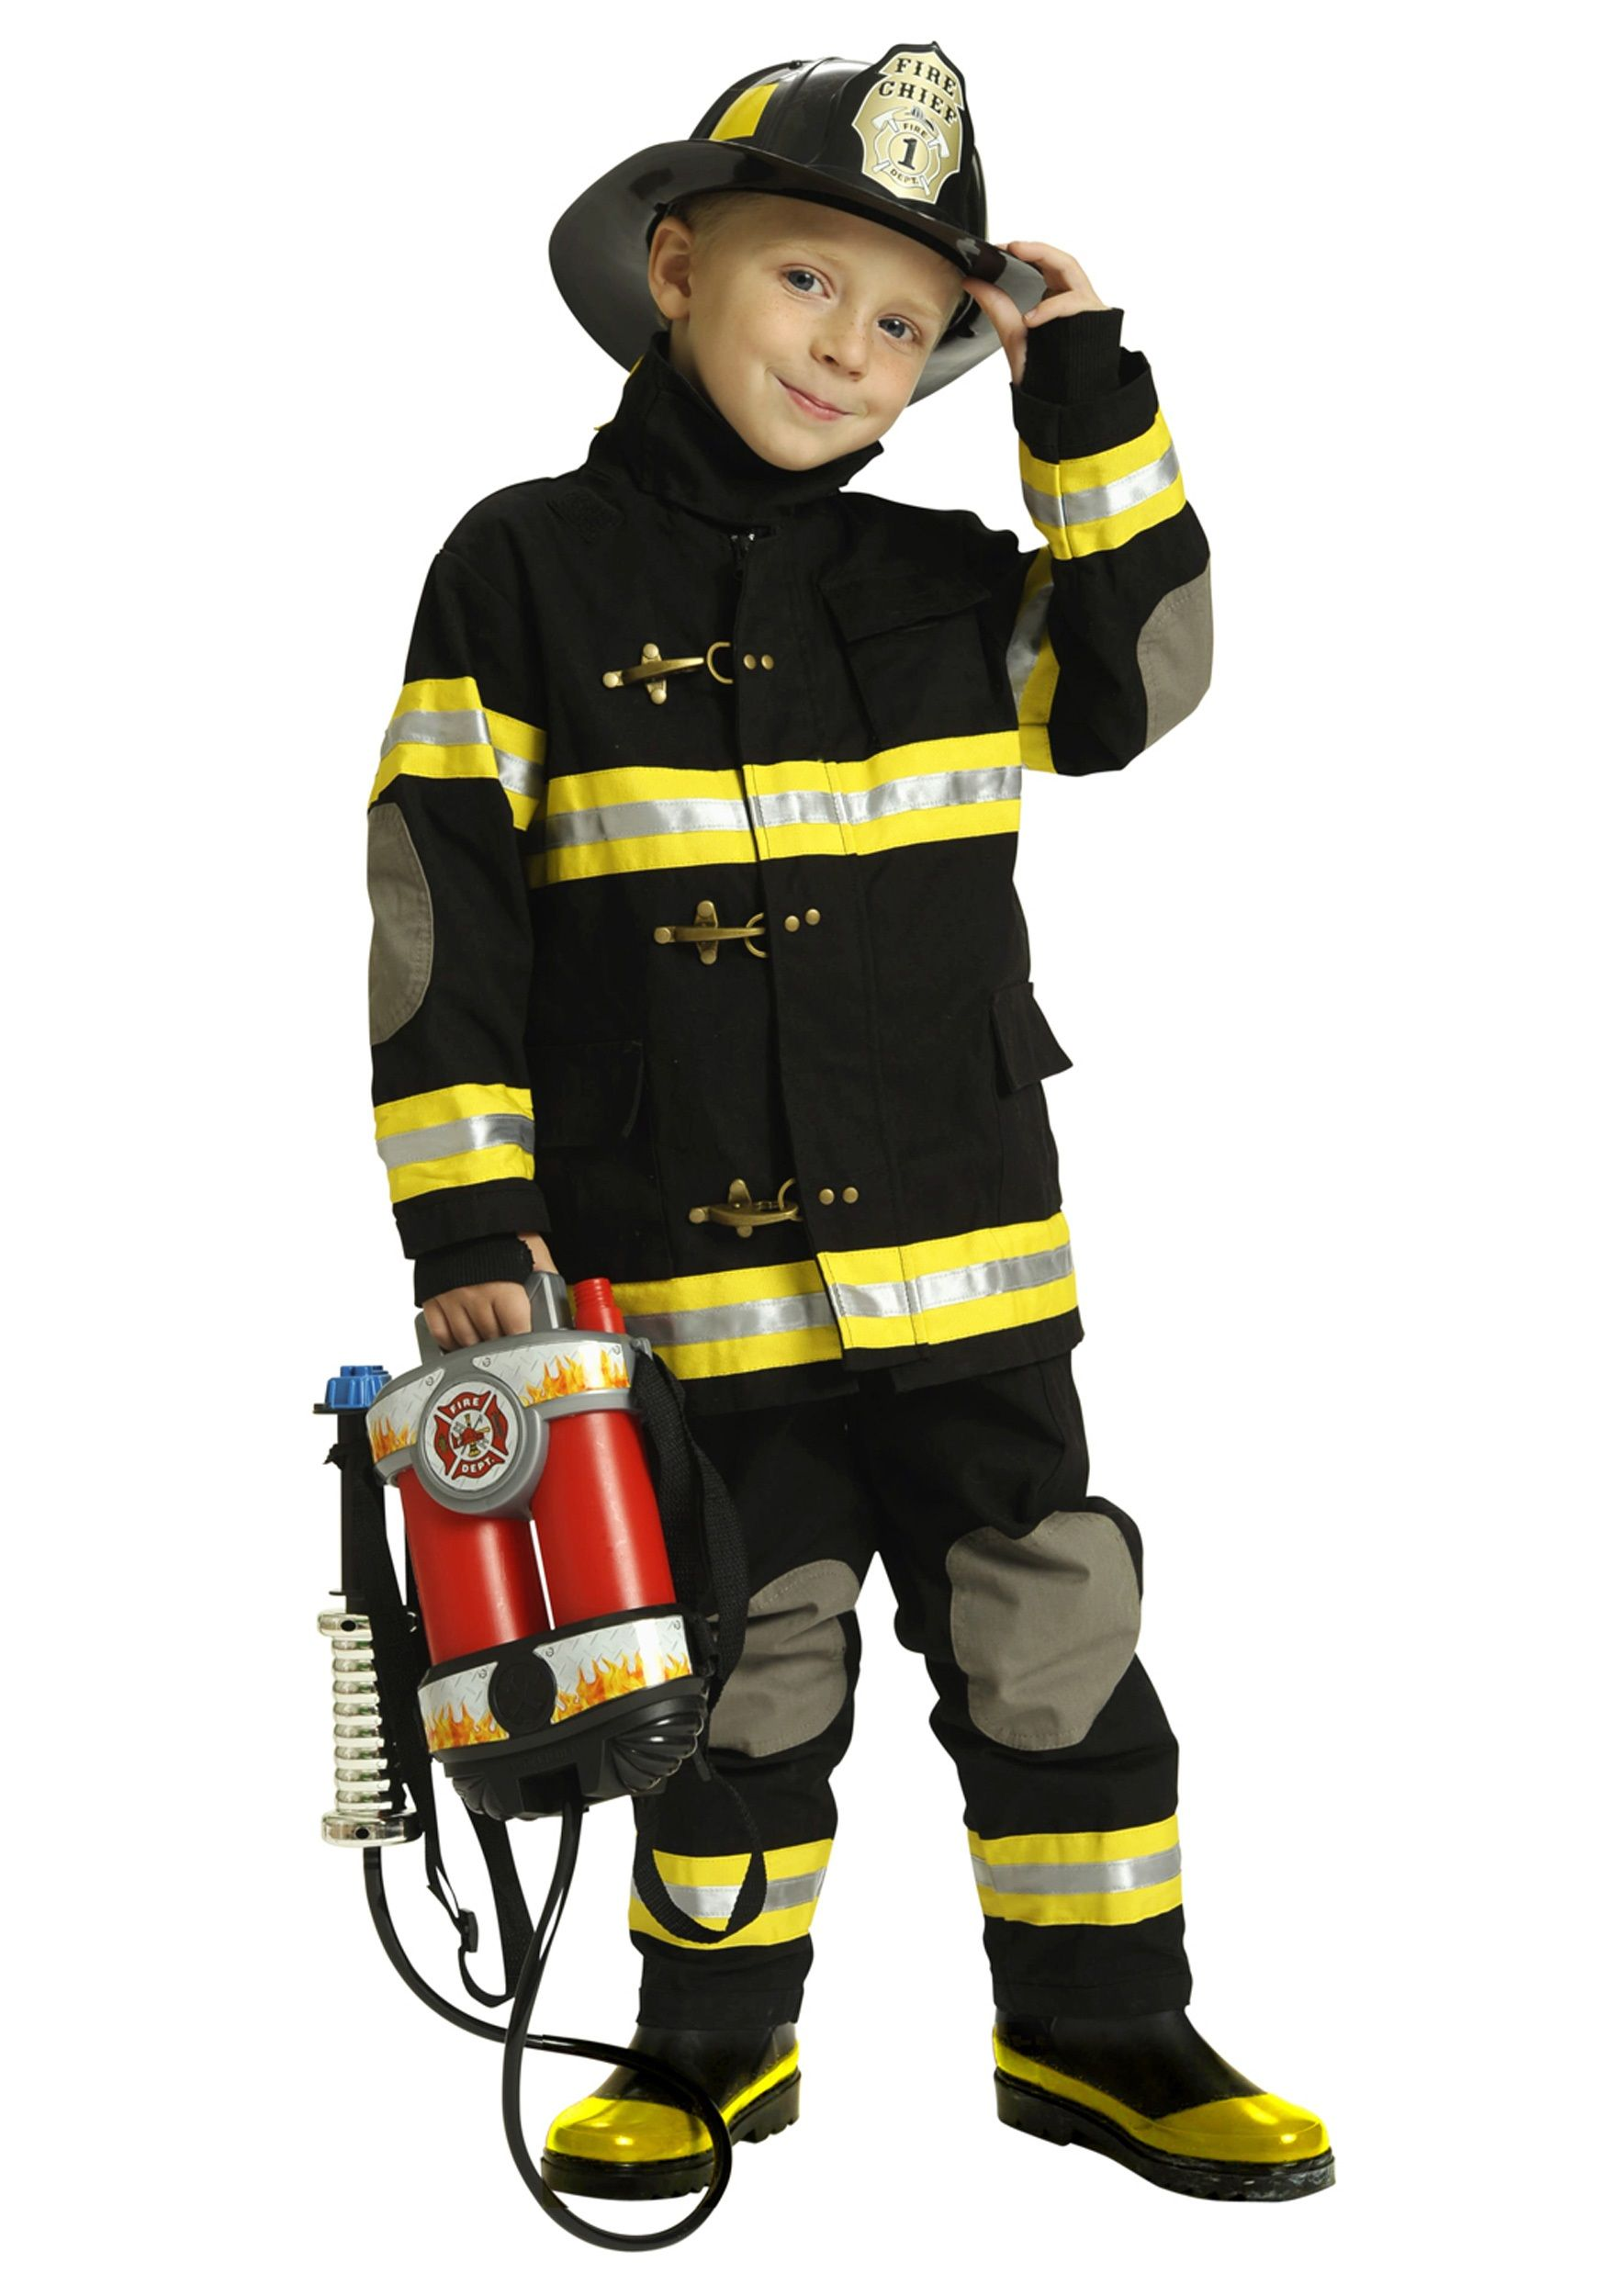 Boys Black Fireman Costume | Fireman costume, Firemen and Toddler ...